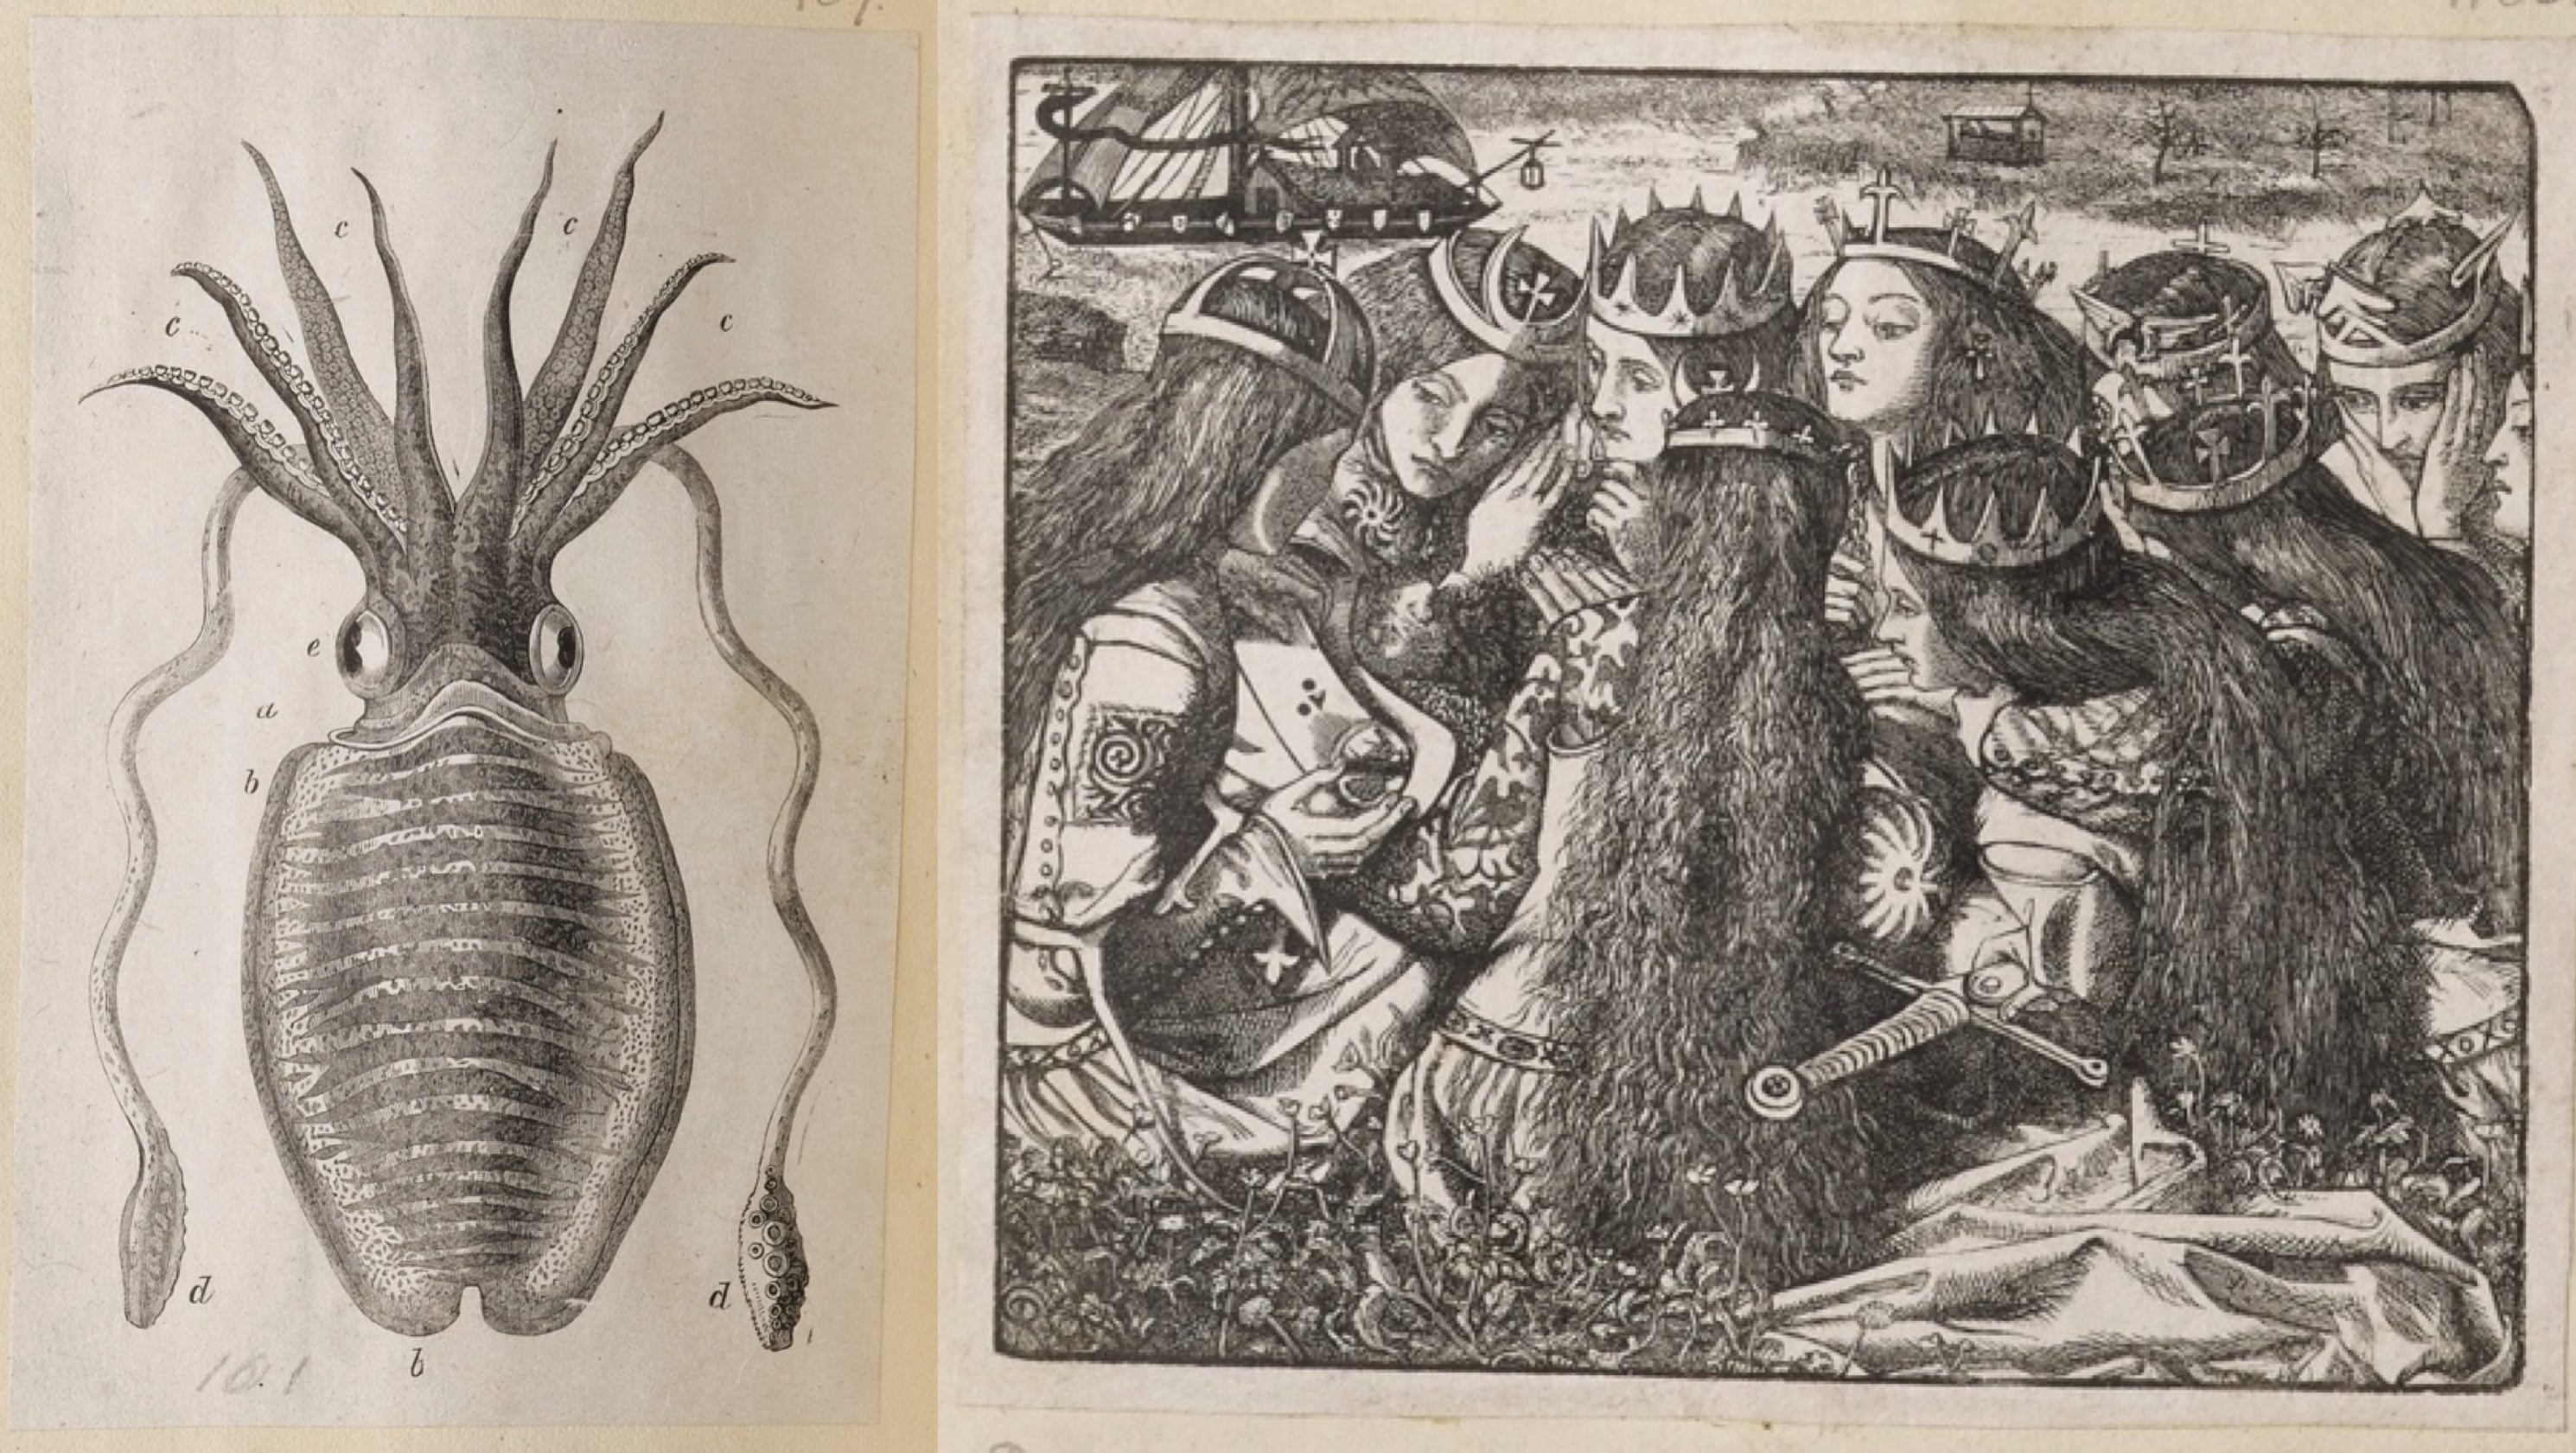 Mollusc and Rossetti illustrations, Dalziel